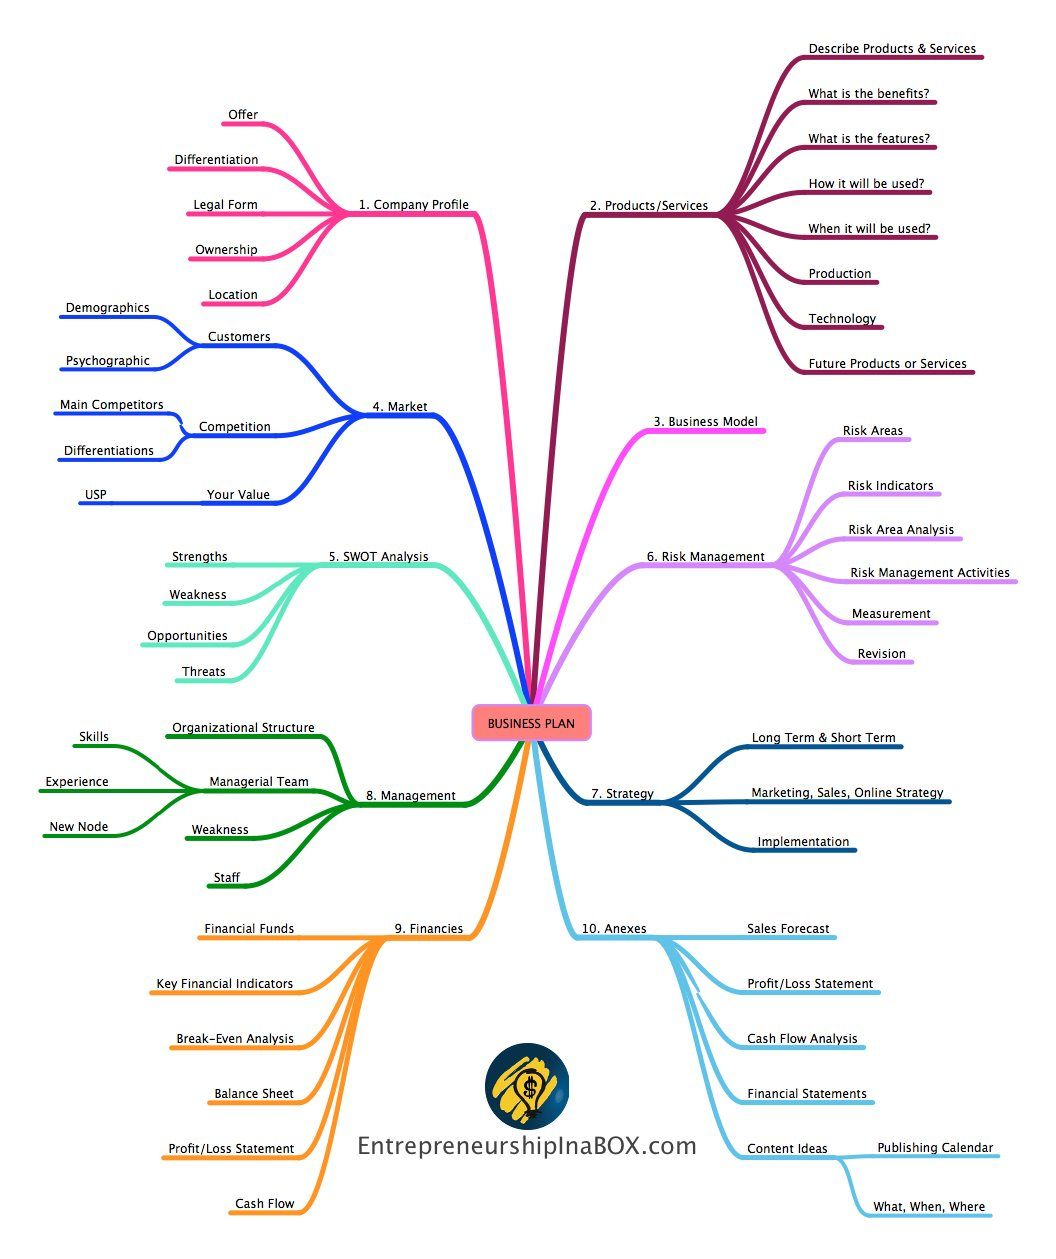 Business Plan Mind Map Business model canvas, How to